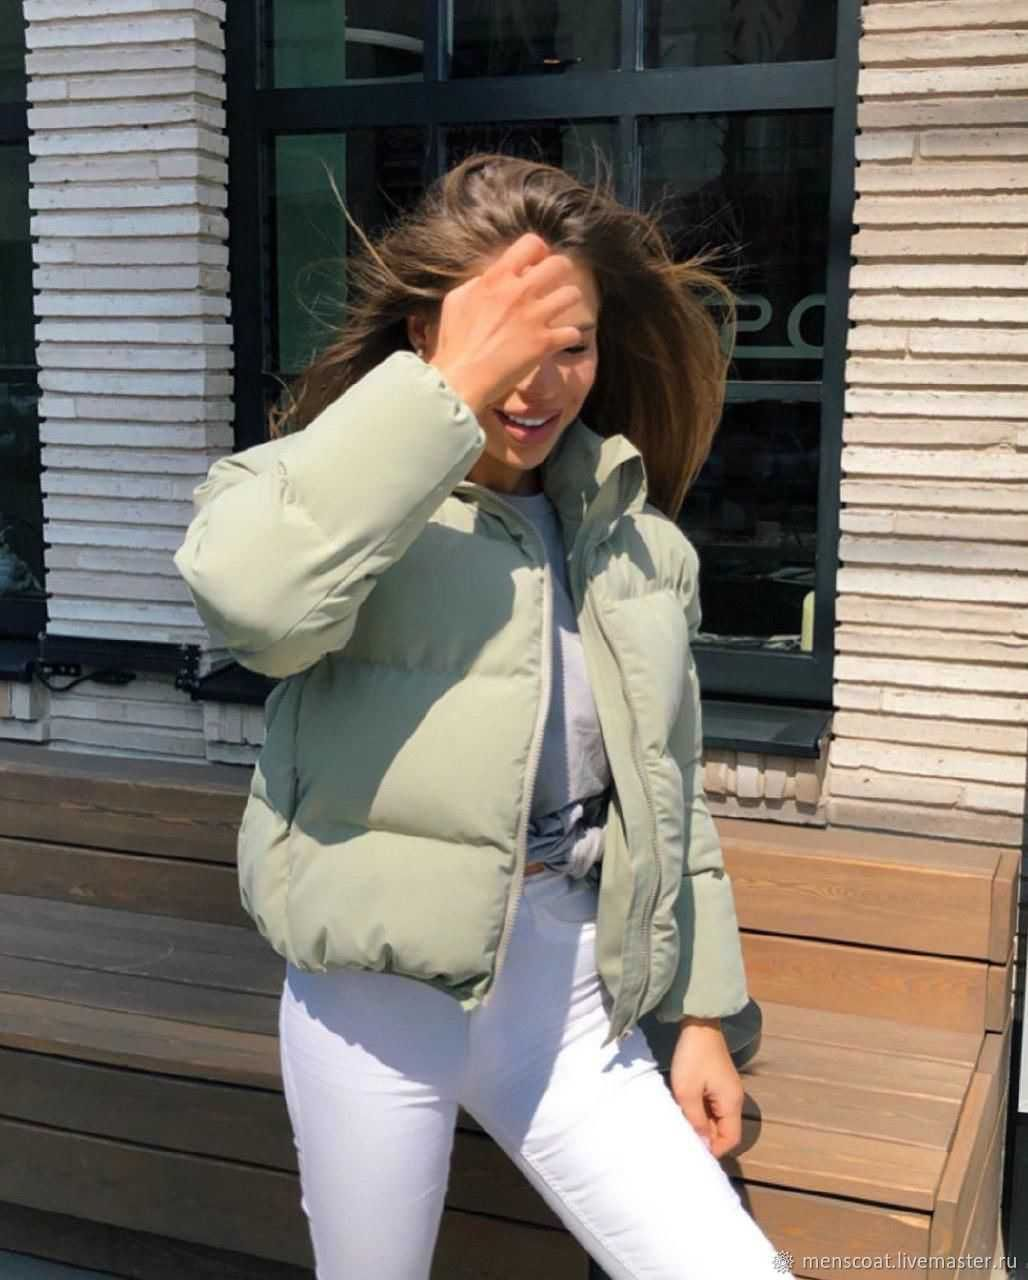 Stand Up Puffer Short Jacket W T I Design Winter Outfits Puffer Jacket Outfit Fashion Inspo Outfits [ 1280 x 1028 Pixel ]